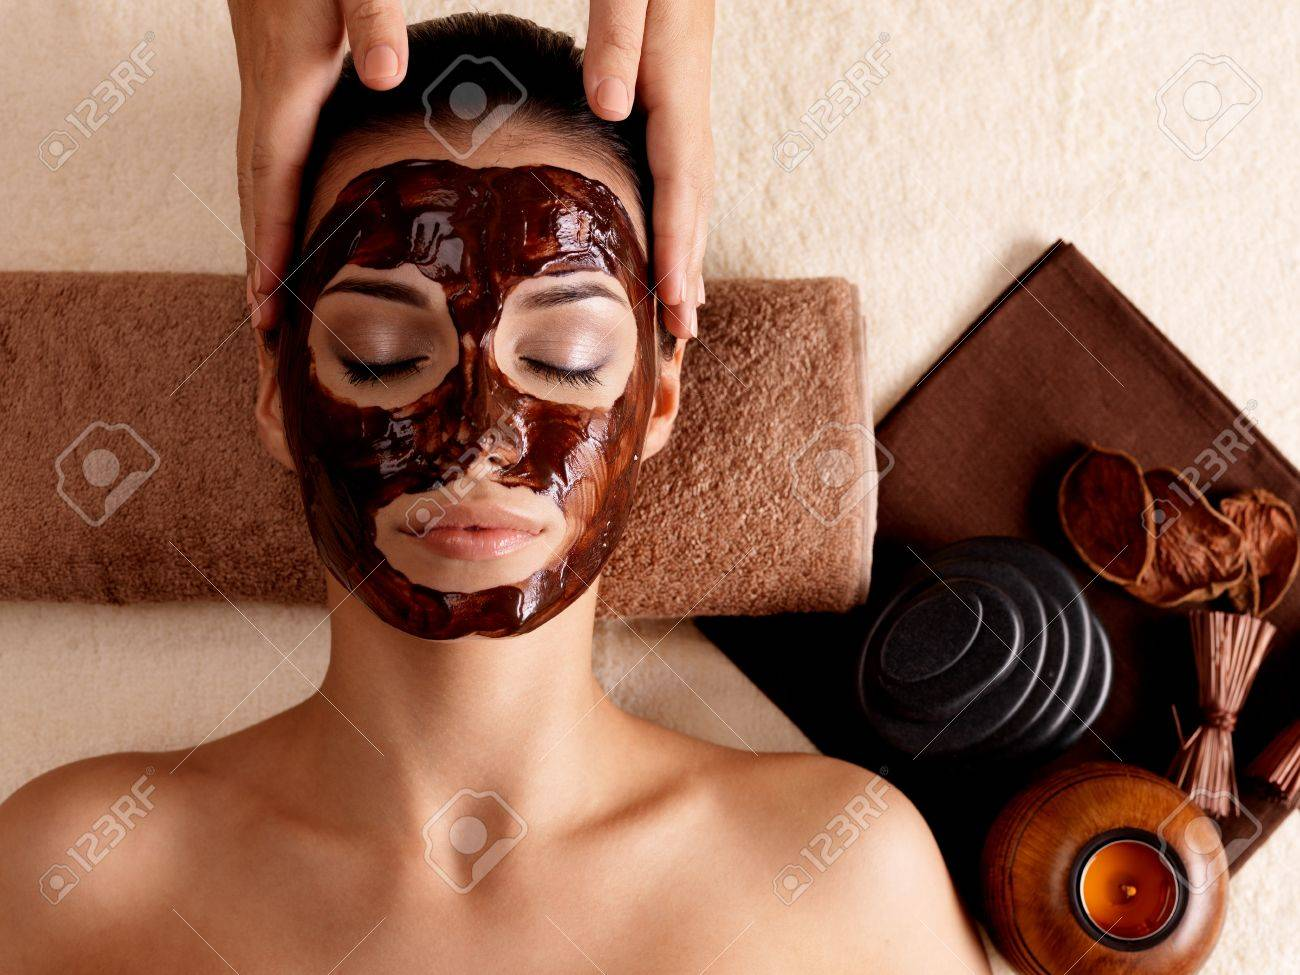 Spa massage for young woman with facial mask on face - indoors Stock Photo - 17642679